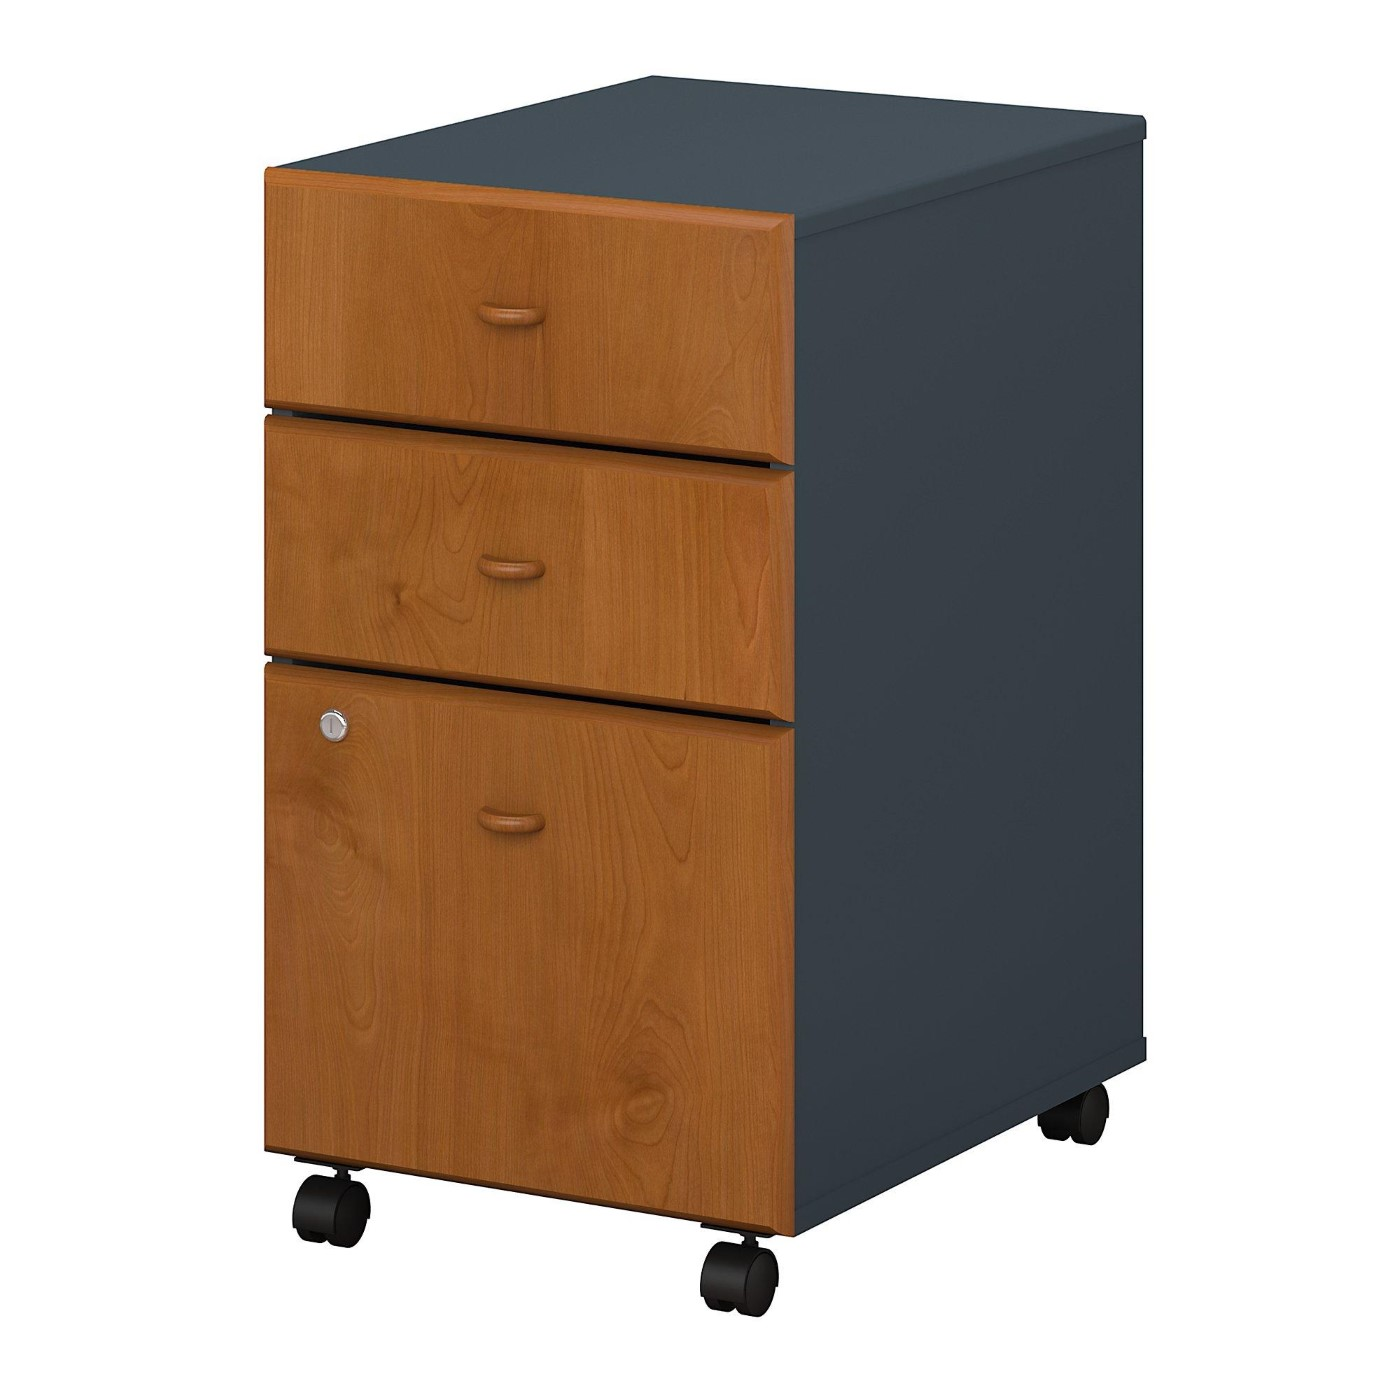 <font color=#c60><b>BUSH BUSINESS FURNITURE SERIES A 3 DRAWER MOBILE FILE CABINET. FREE SHIPPING</font></b>